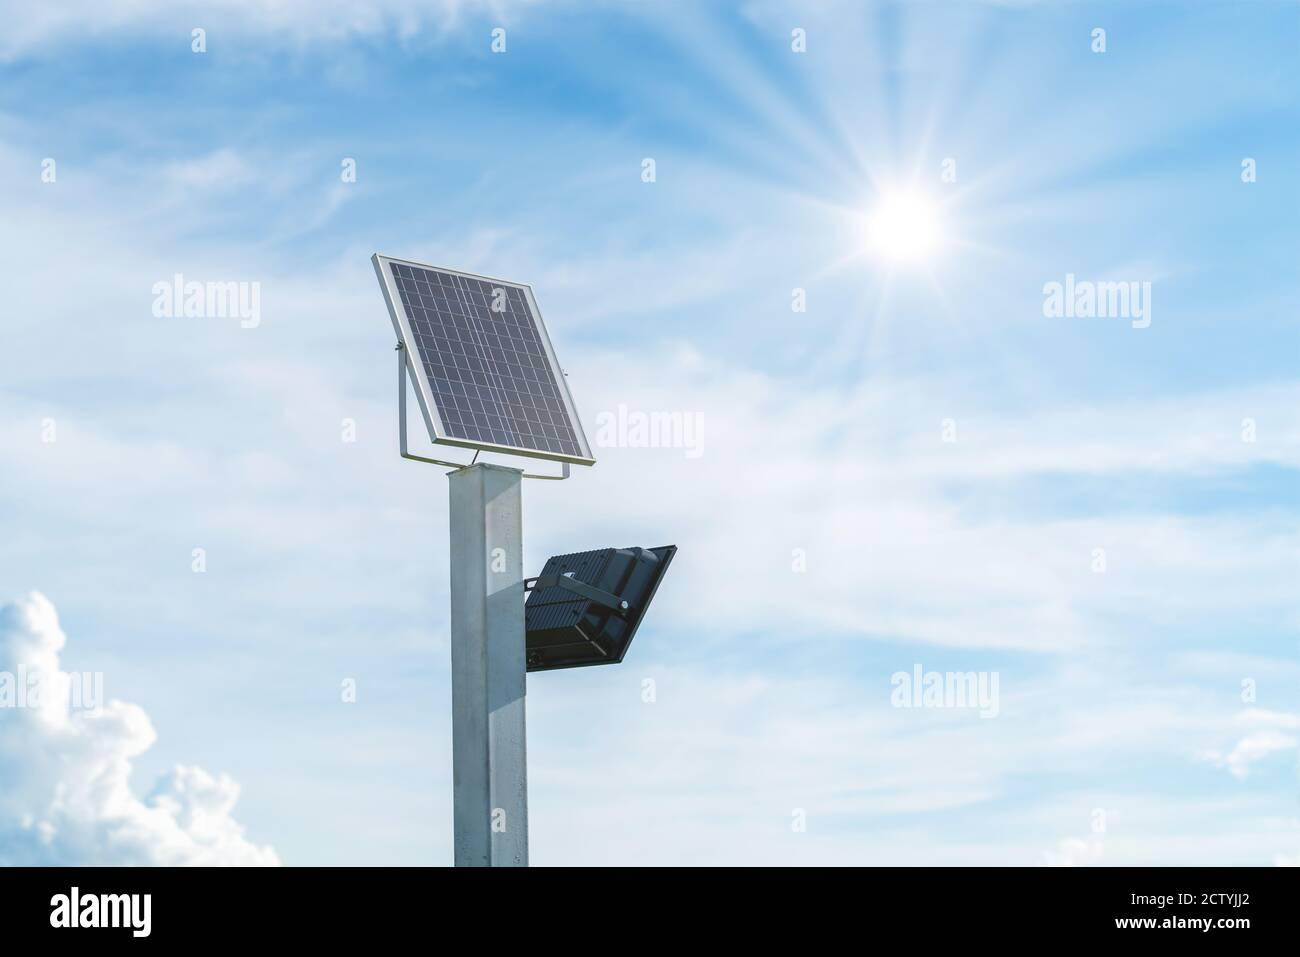 https www alamy com small size solar plant outdoor lighting pole with small solar panel power by themself is new technology and energy trend for public area in the city image376776794 html